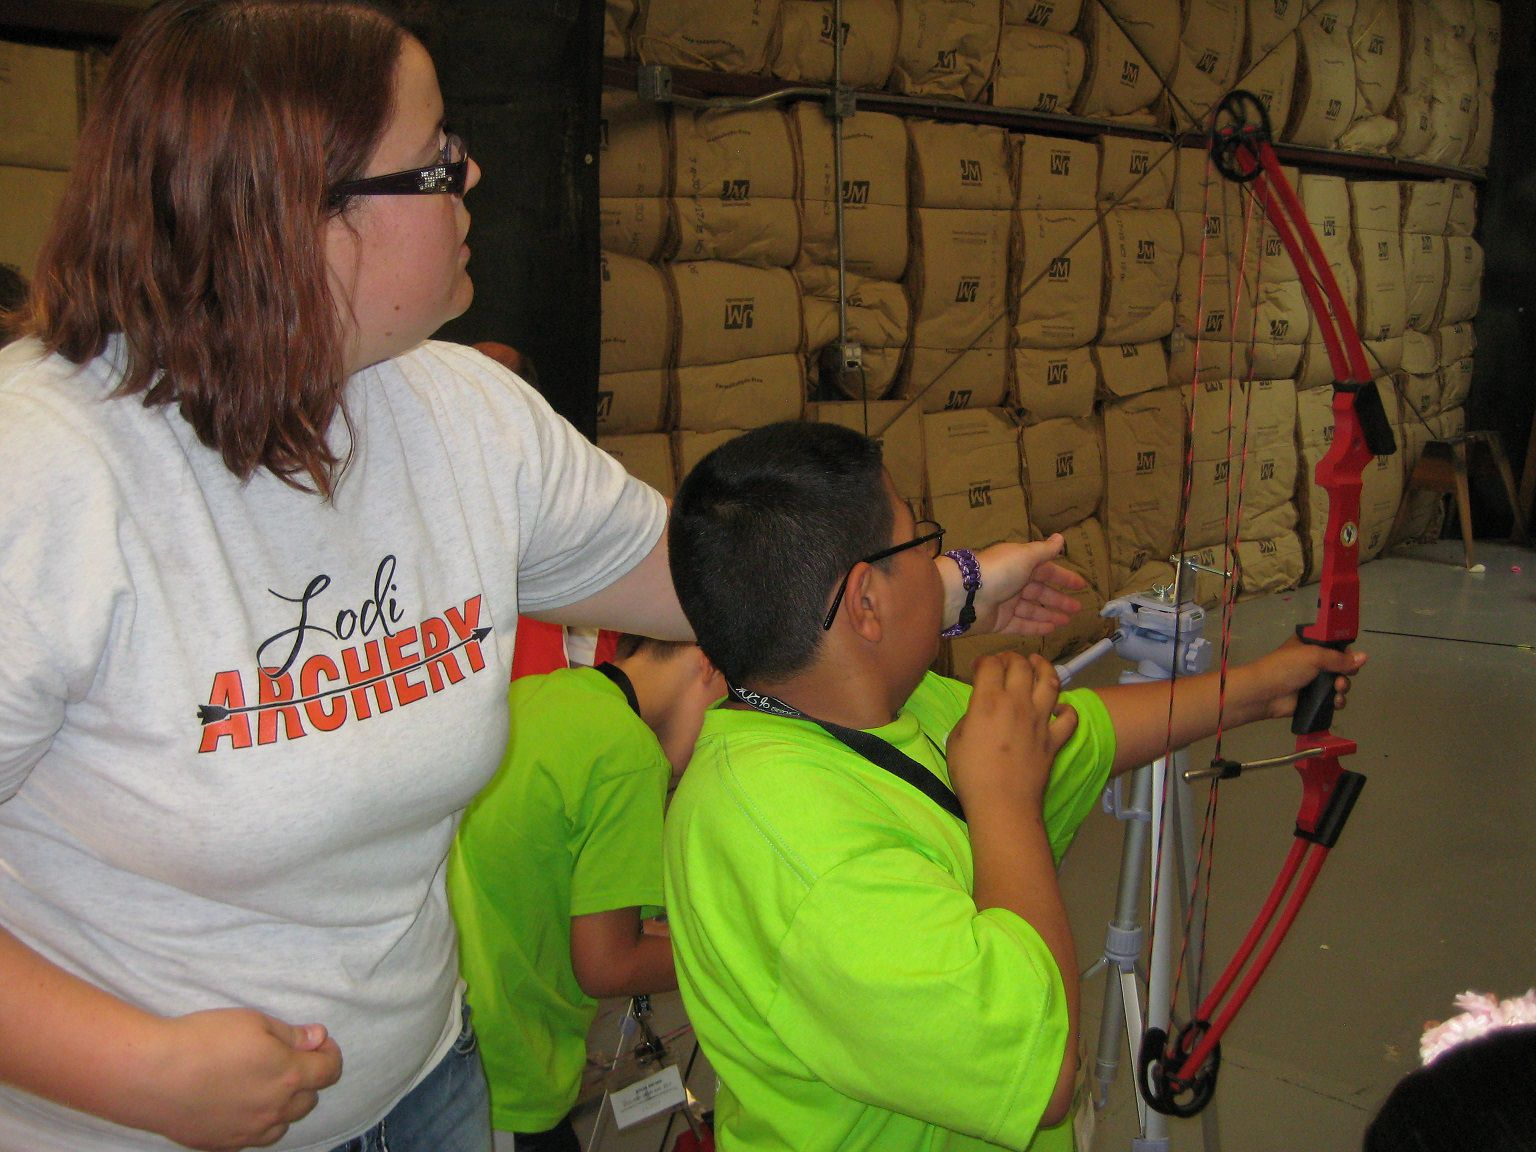 A woman shows a young boy who is visually impaired how to hold a bow.